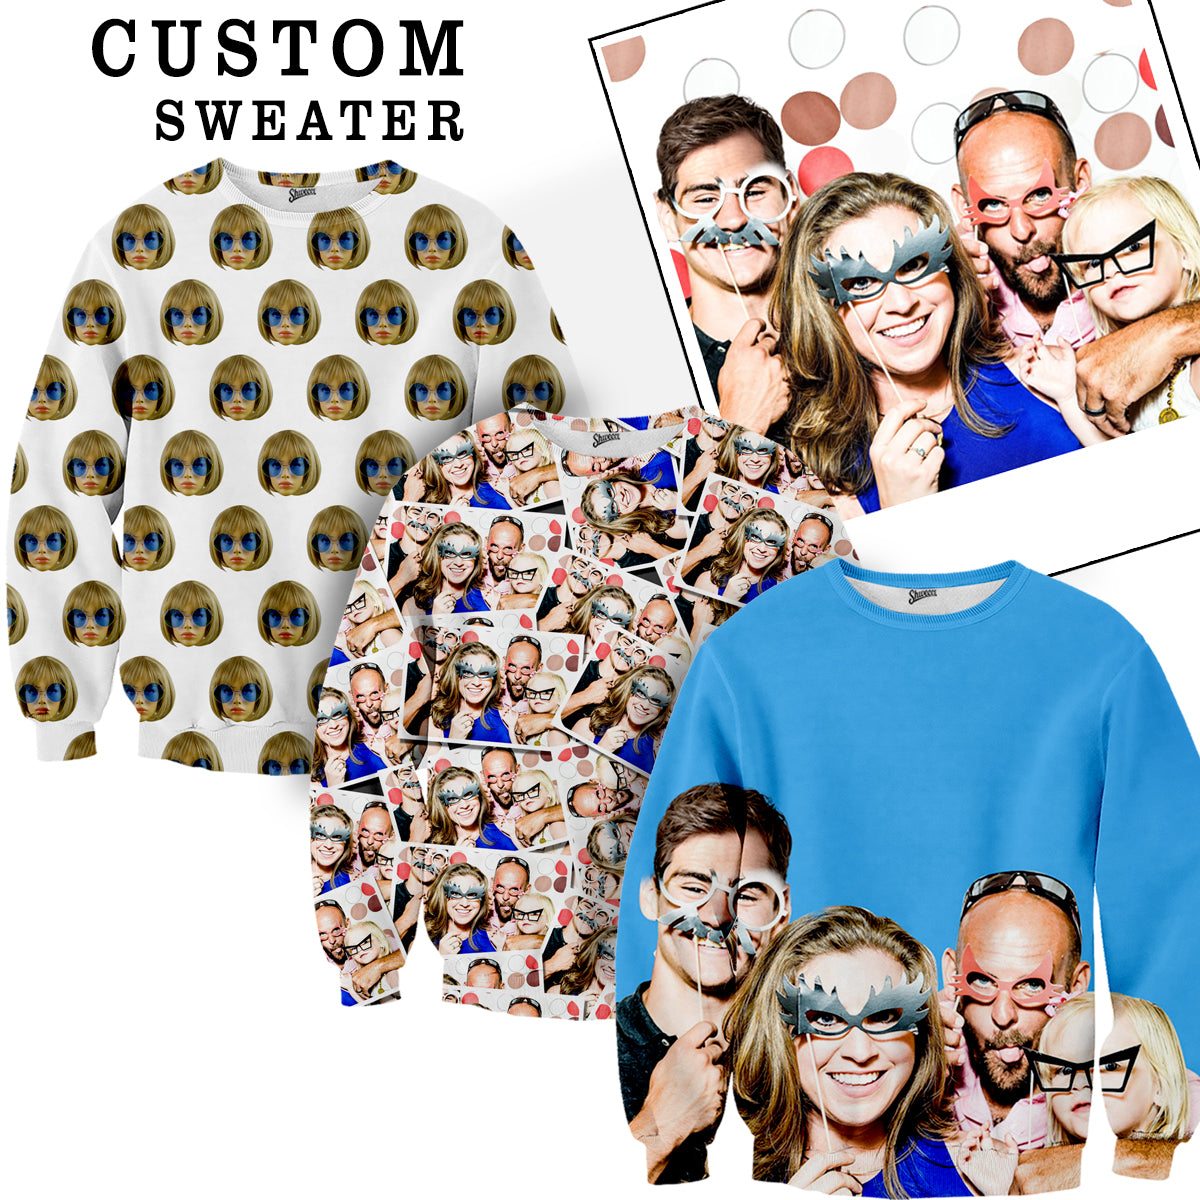 Custom Face Sweater